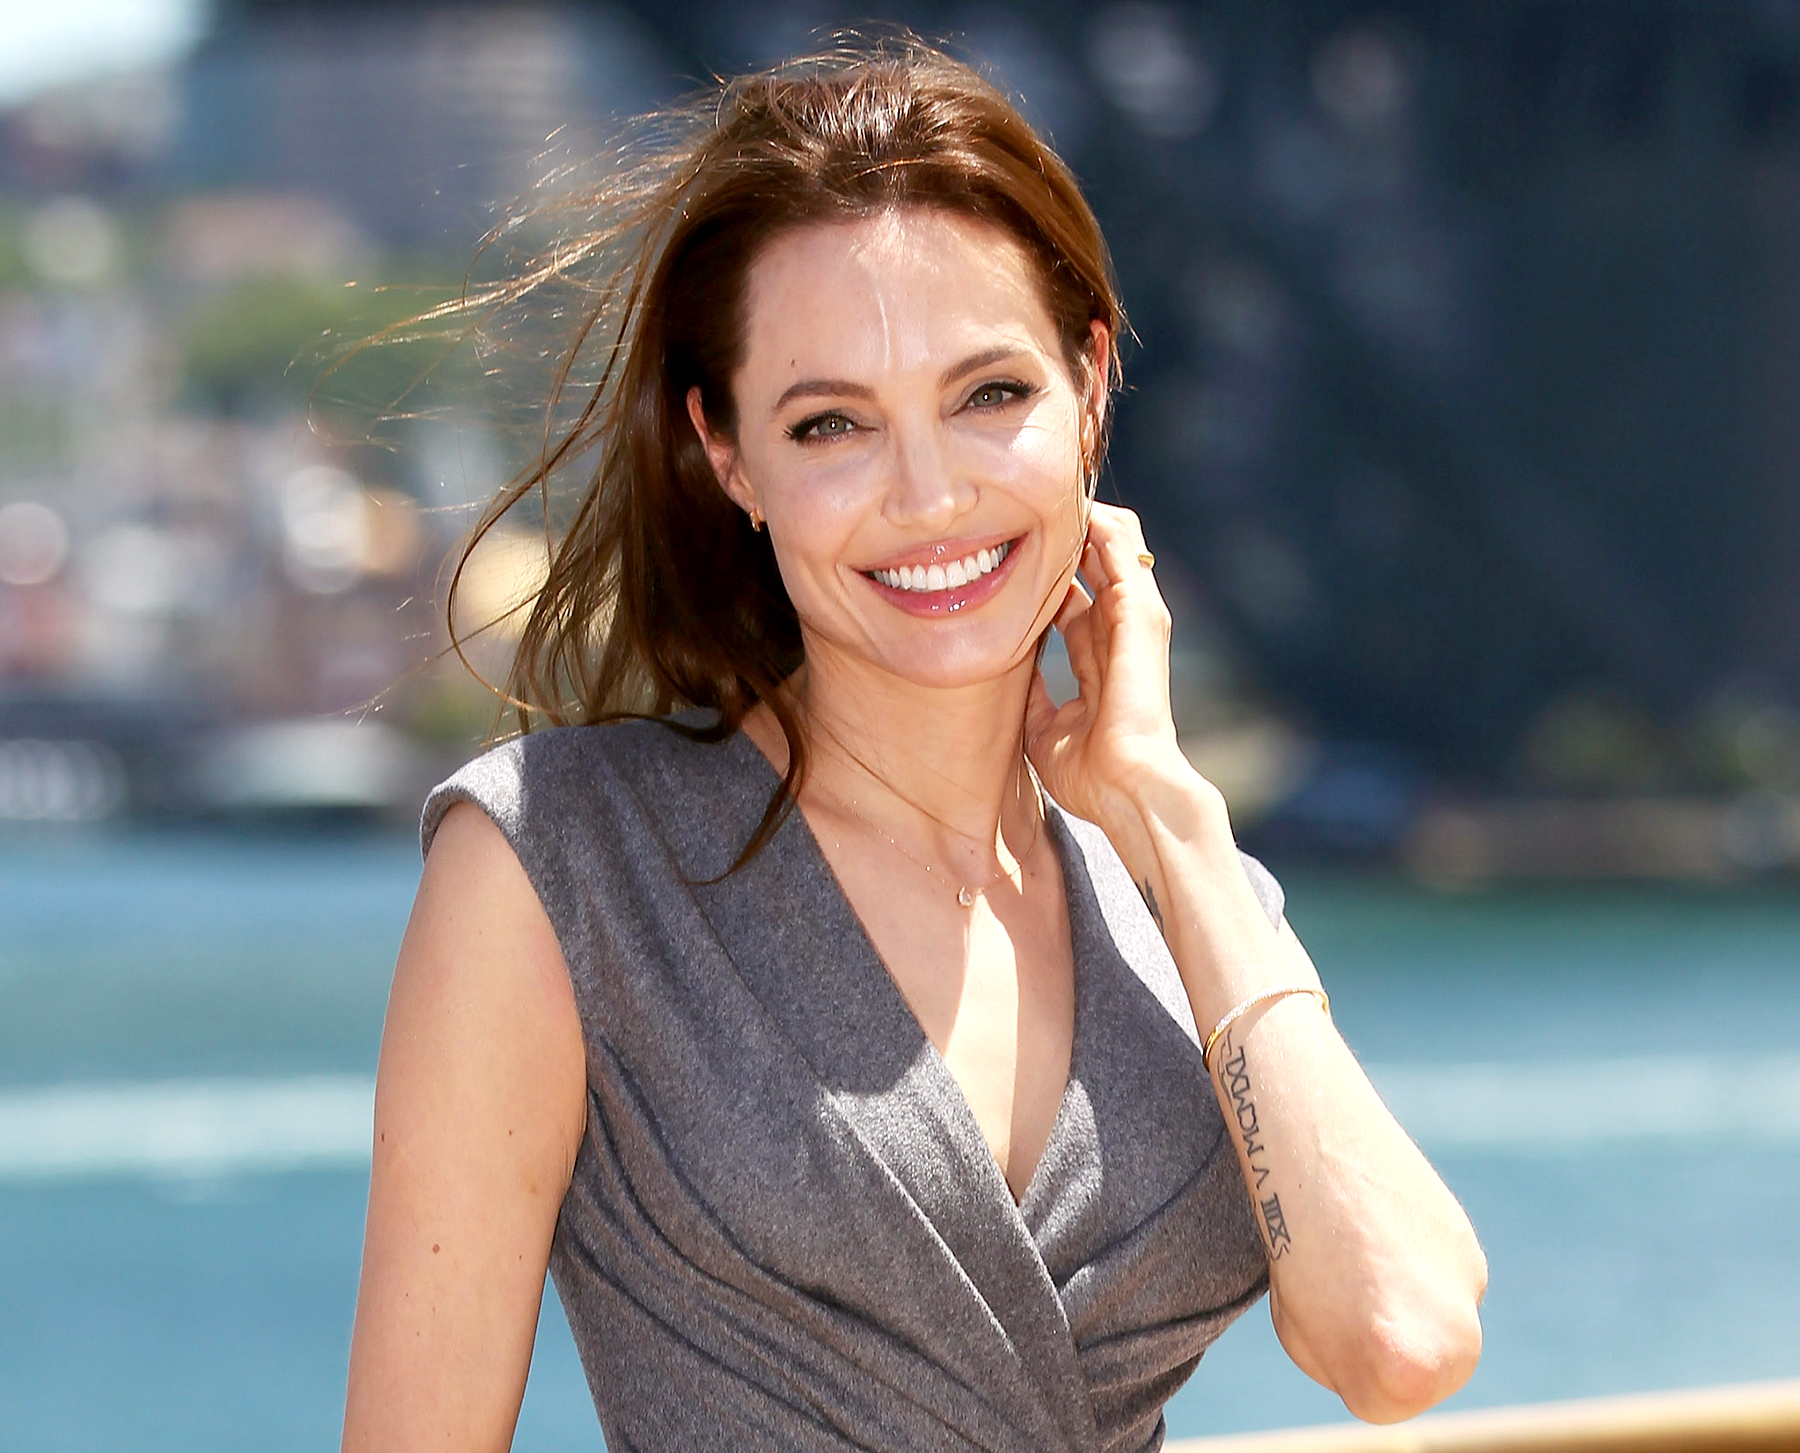 Angelina Jolie Had Ovaries & Fallopian Tubes REMOVED!